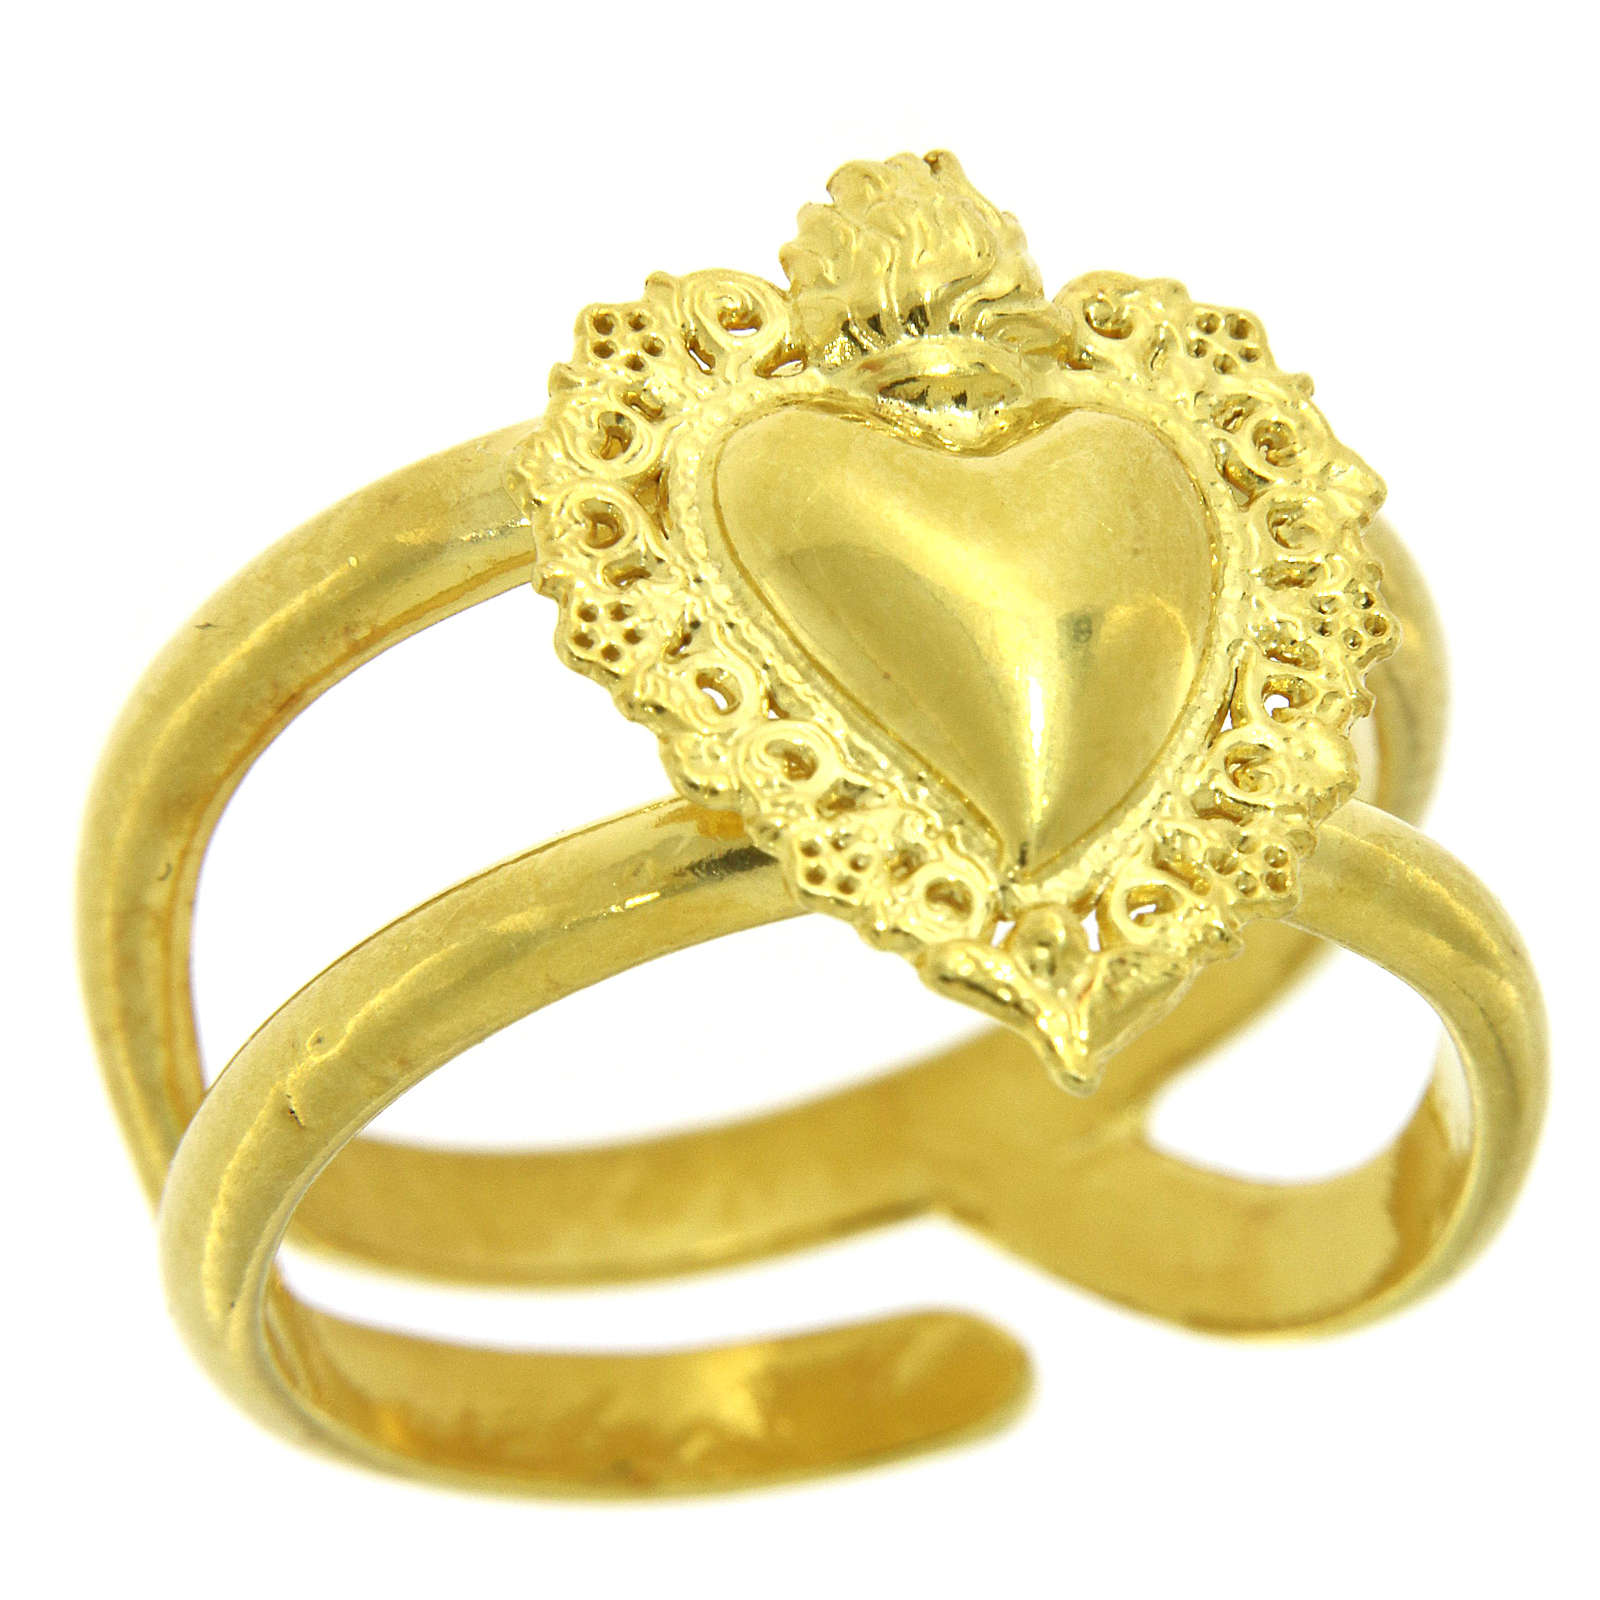 Ring in 925 silver with Votive Heart, golden 3